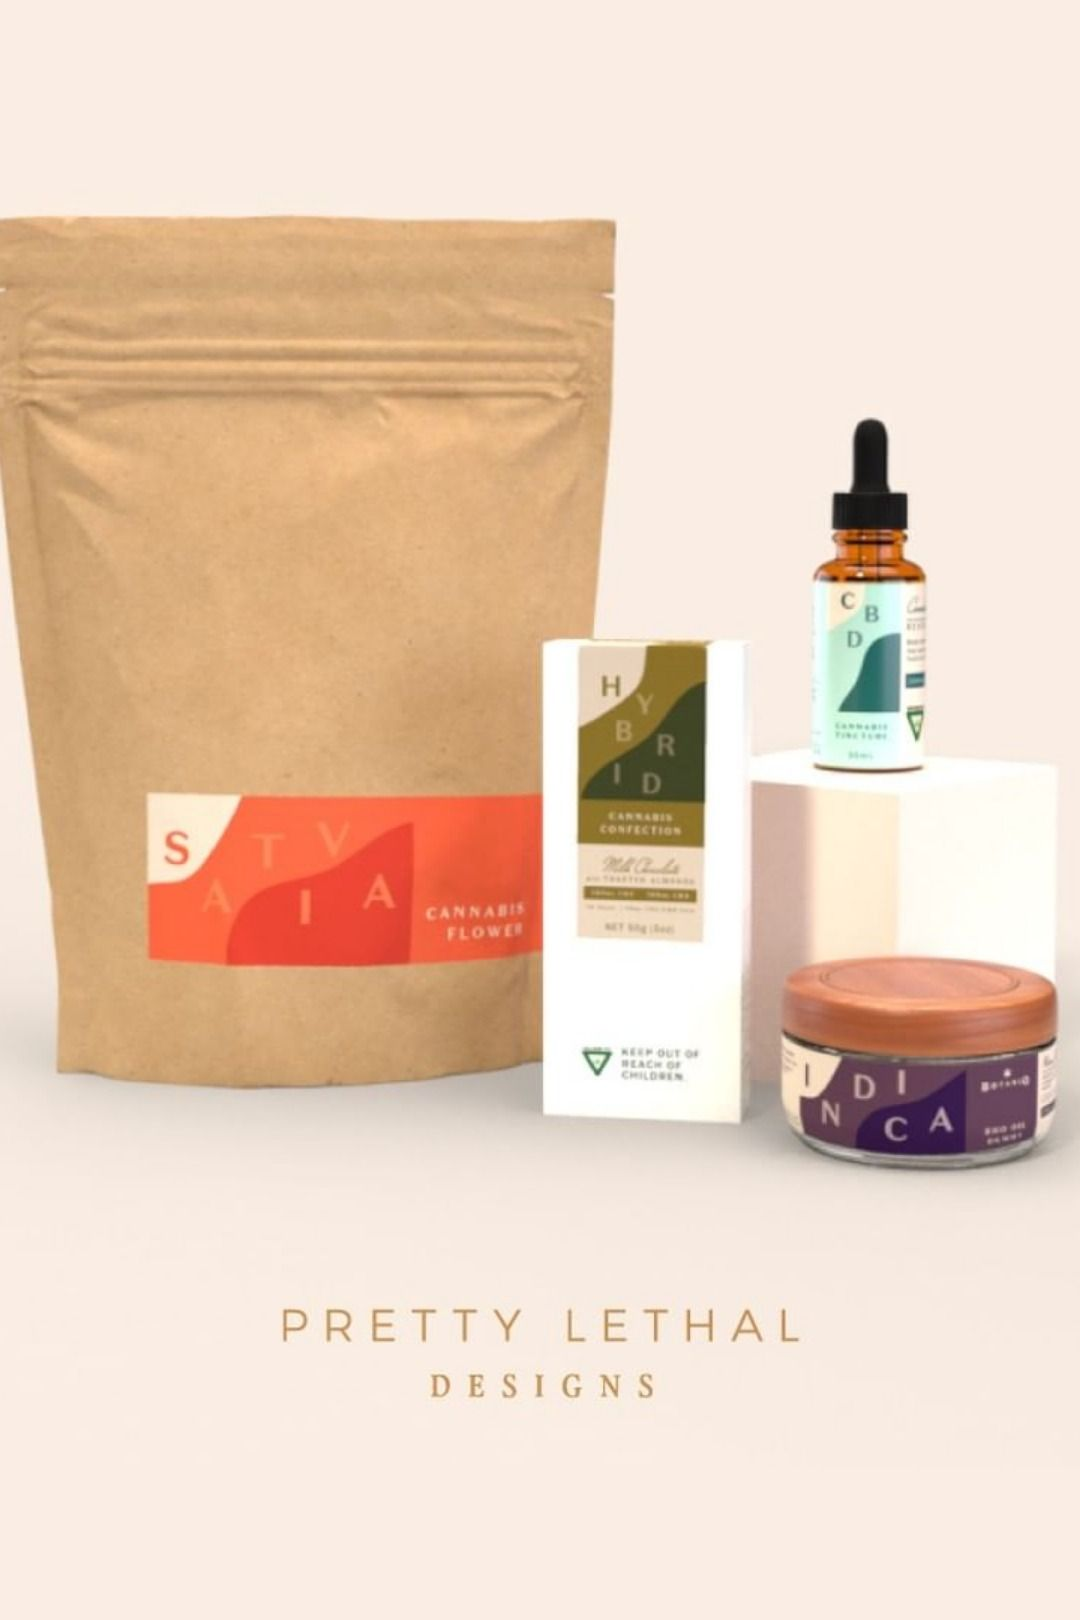 Packaging range for Sativa, Hybrid and Indica strains with